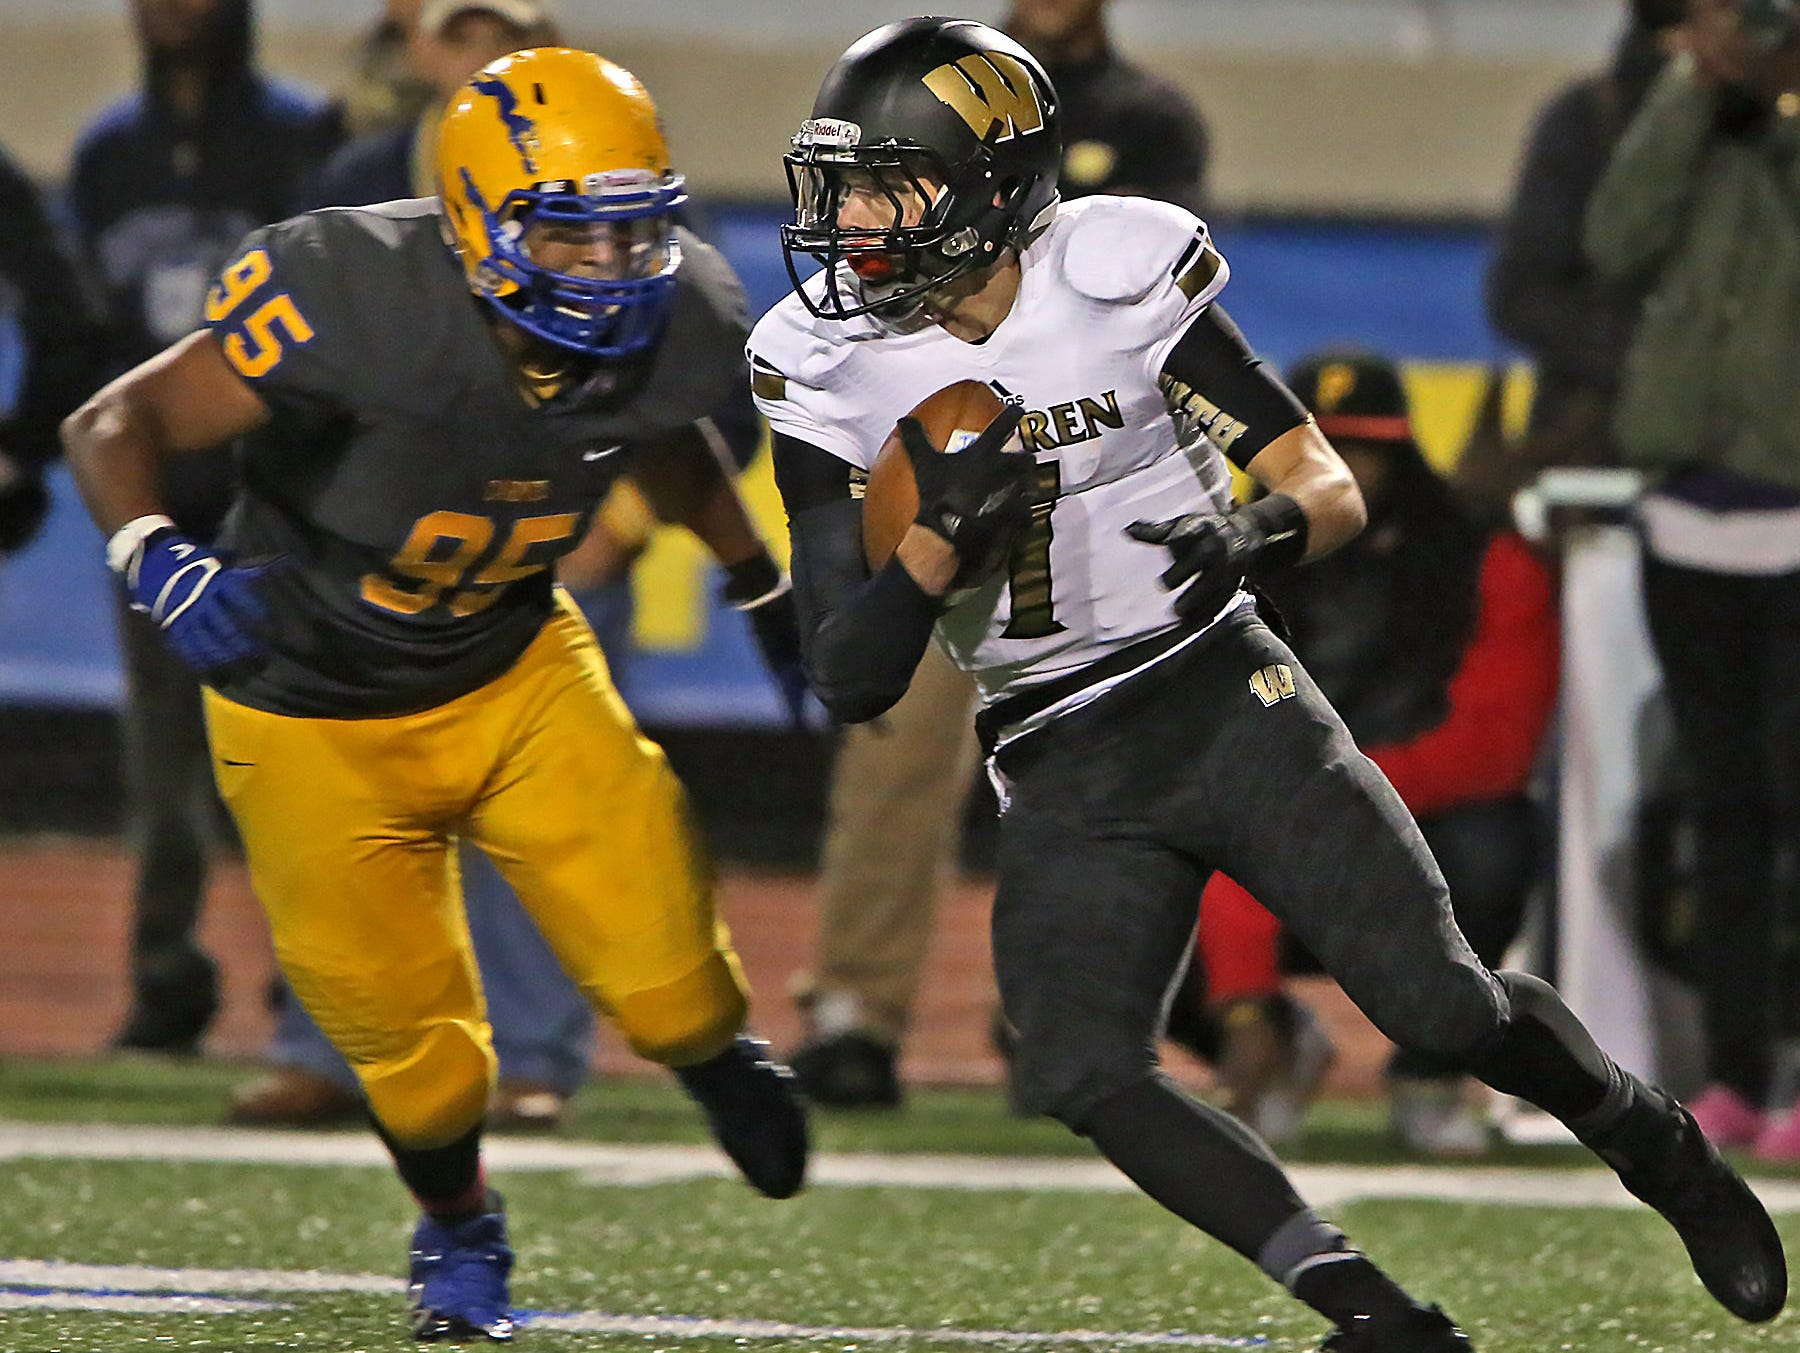 Warren Central quarterback Zach Summeier #7 keeps the ball as Carmel's #95 Rodney Haywood closes in during the Warren Central at Carmel High School football game, Friday, October 9, 2015. Carmel won 30-20.